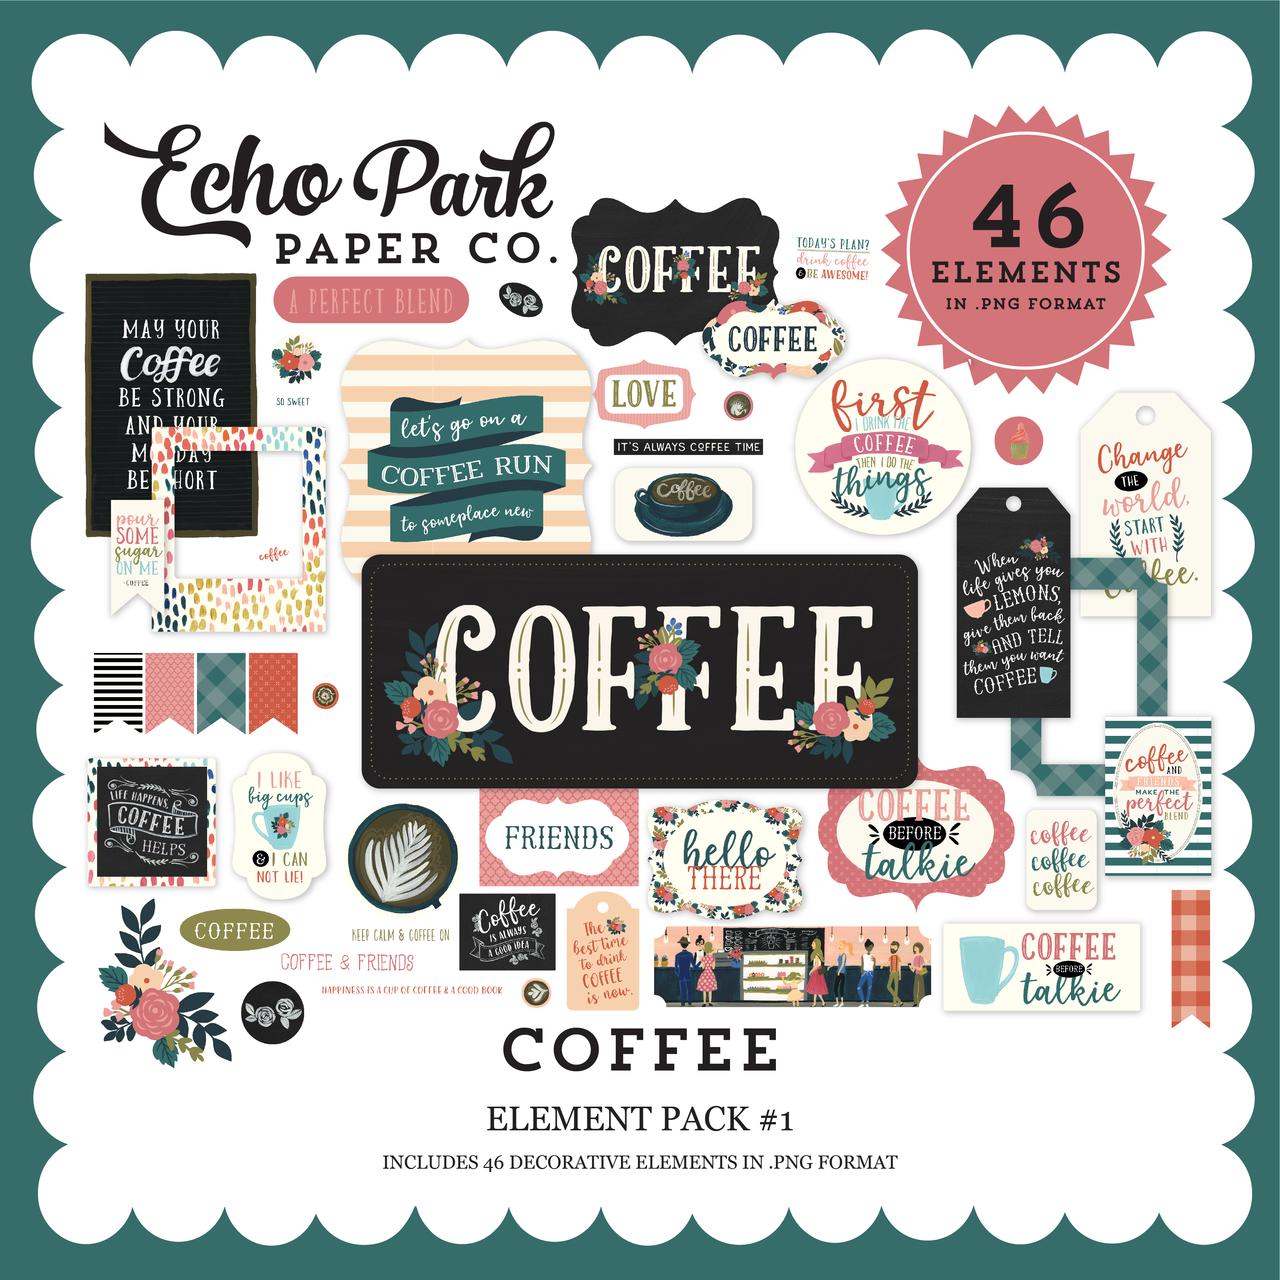 Coffee Element Pack #1